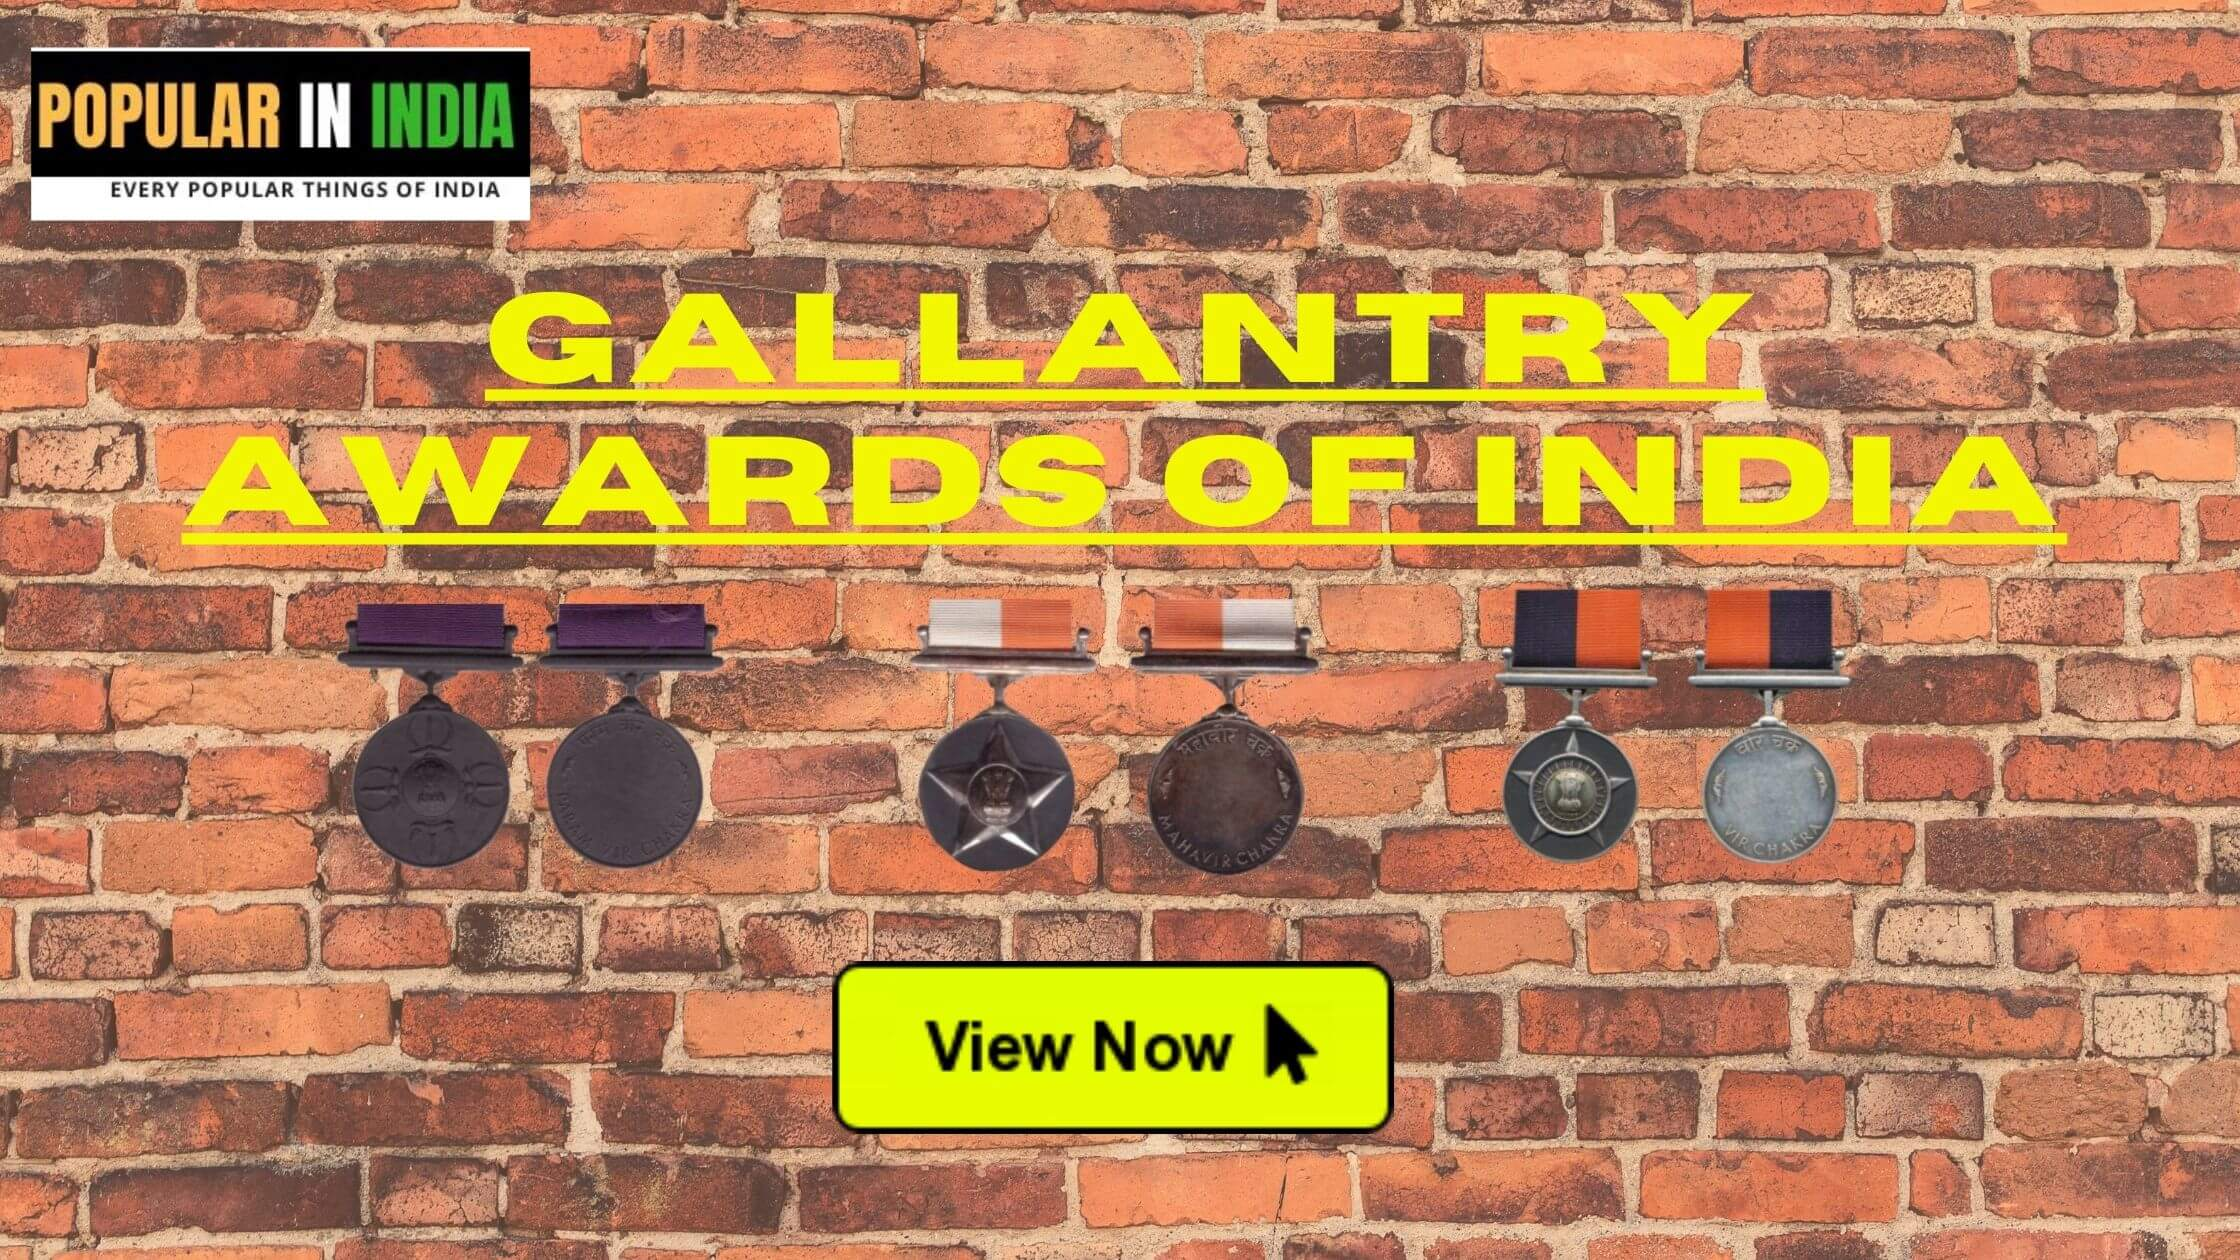 Top 3 Gallantry awards of India You Must Know Popular in India